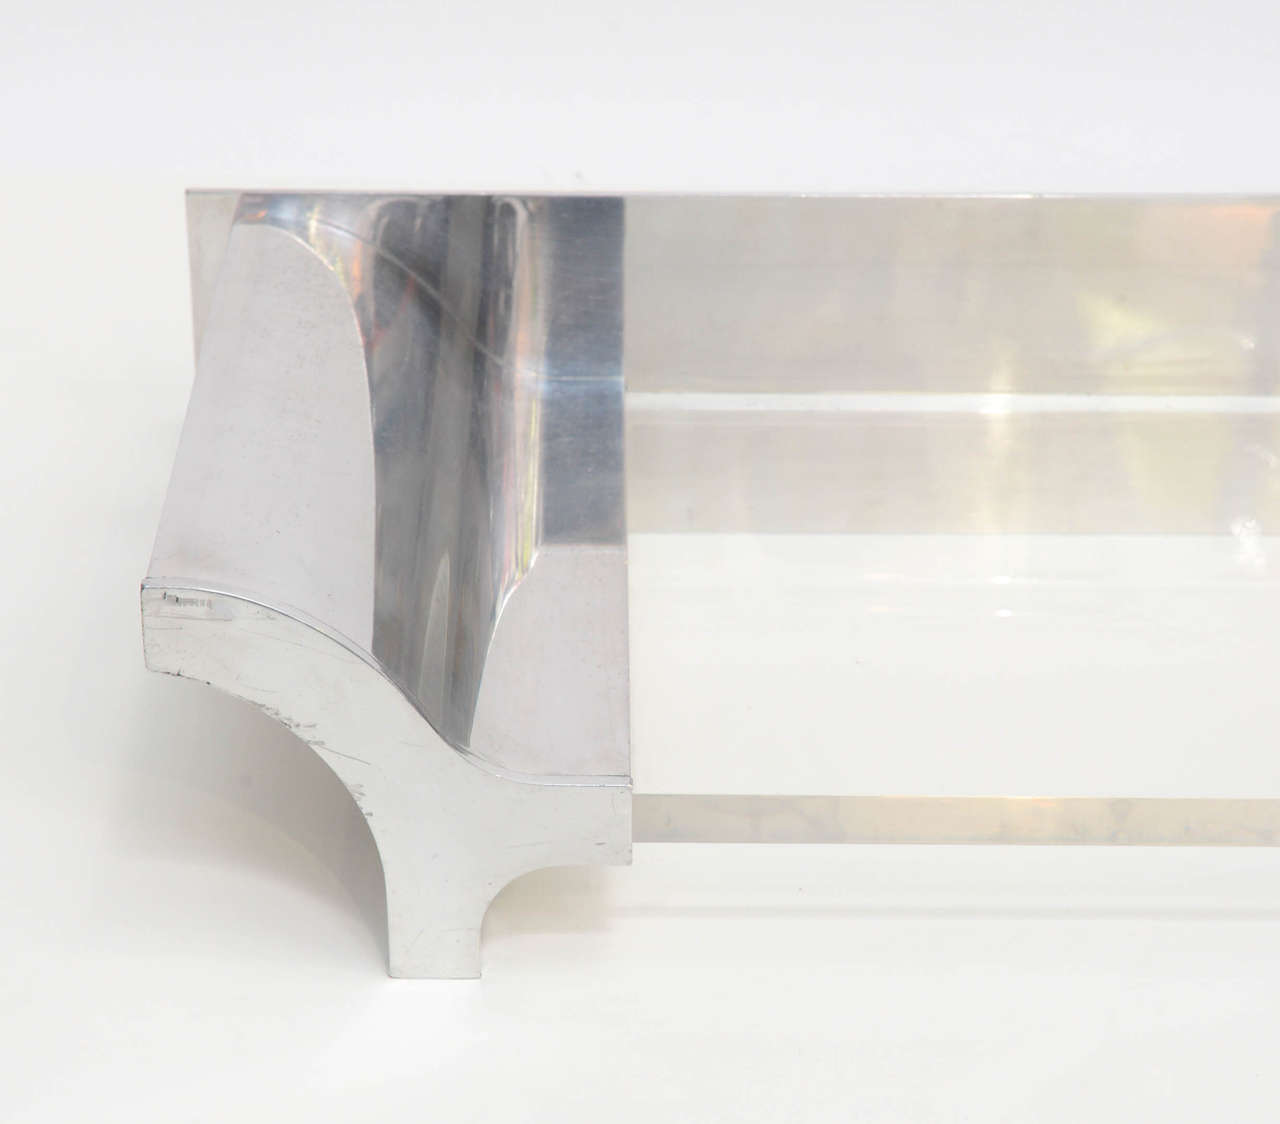 American Aluminium and Lucite Wall-Mounted Console, Signed by Karl Springer, 1970s For Sale